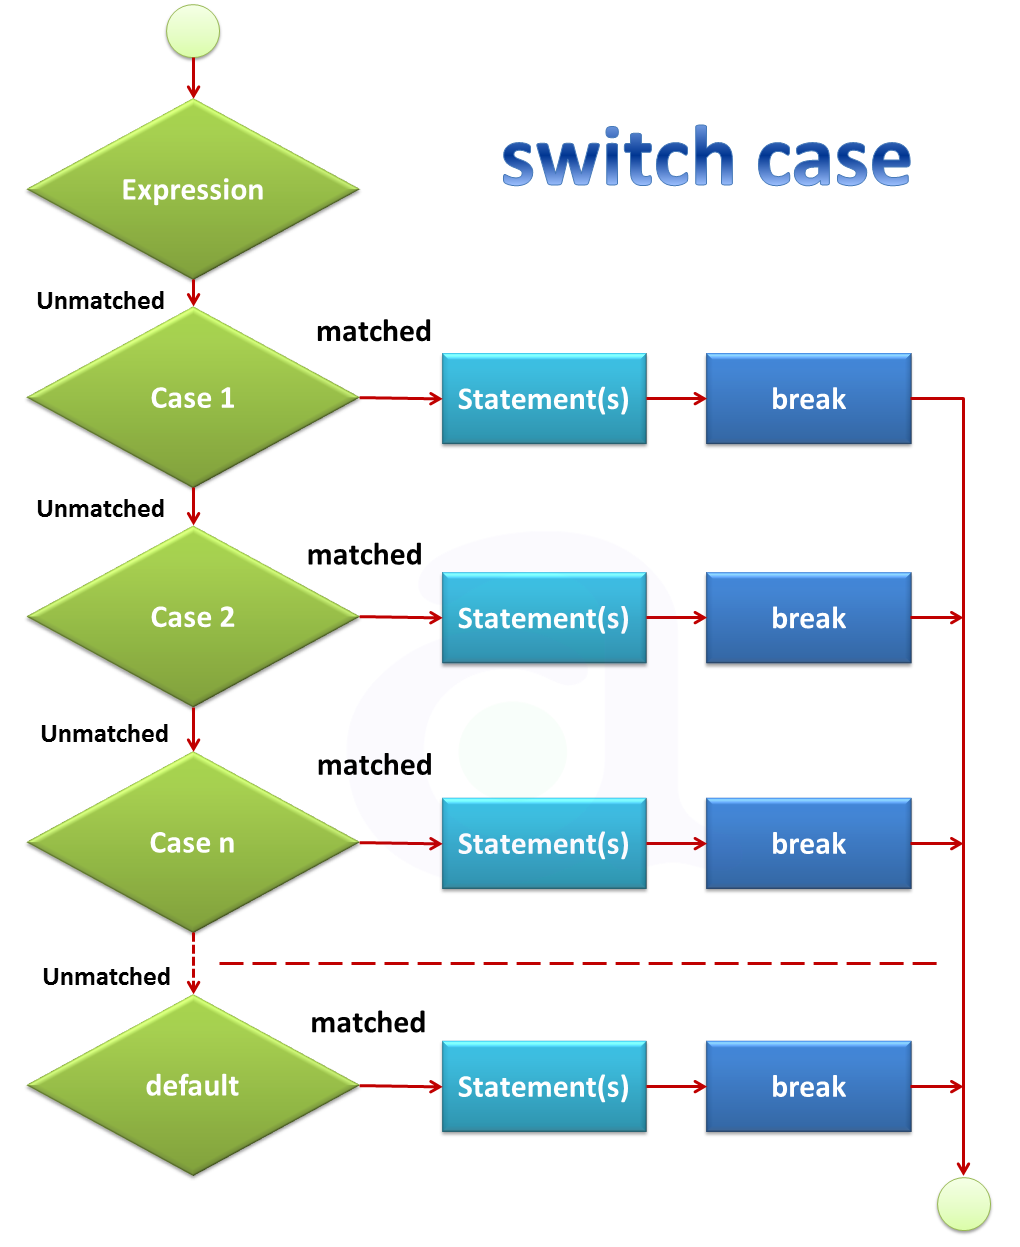 Switch case decision making in java programming language atnyla switch case flow chart ccuart Gallery